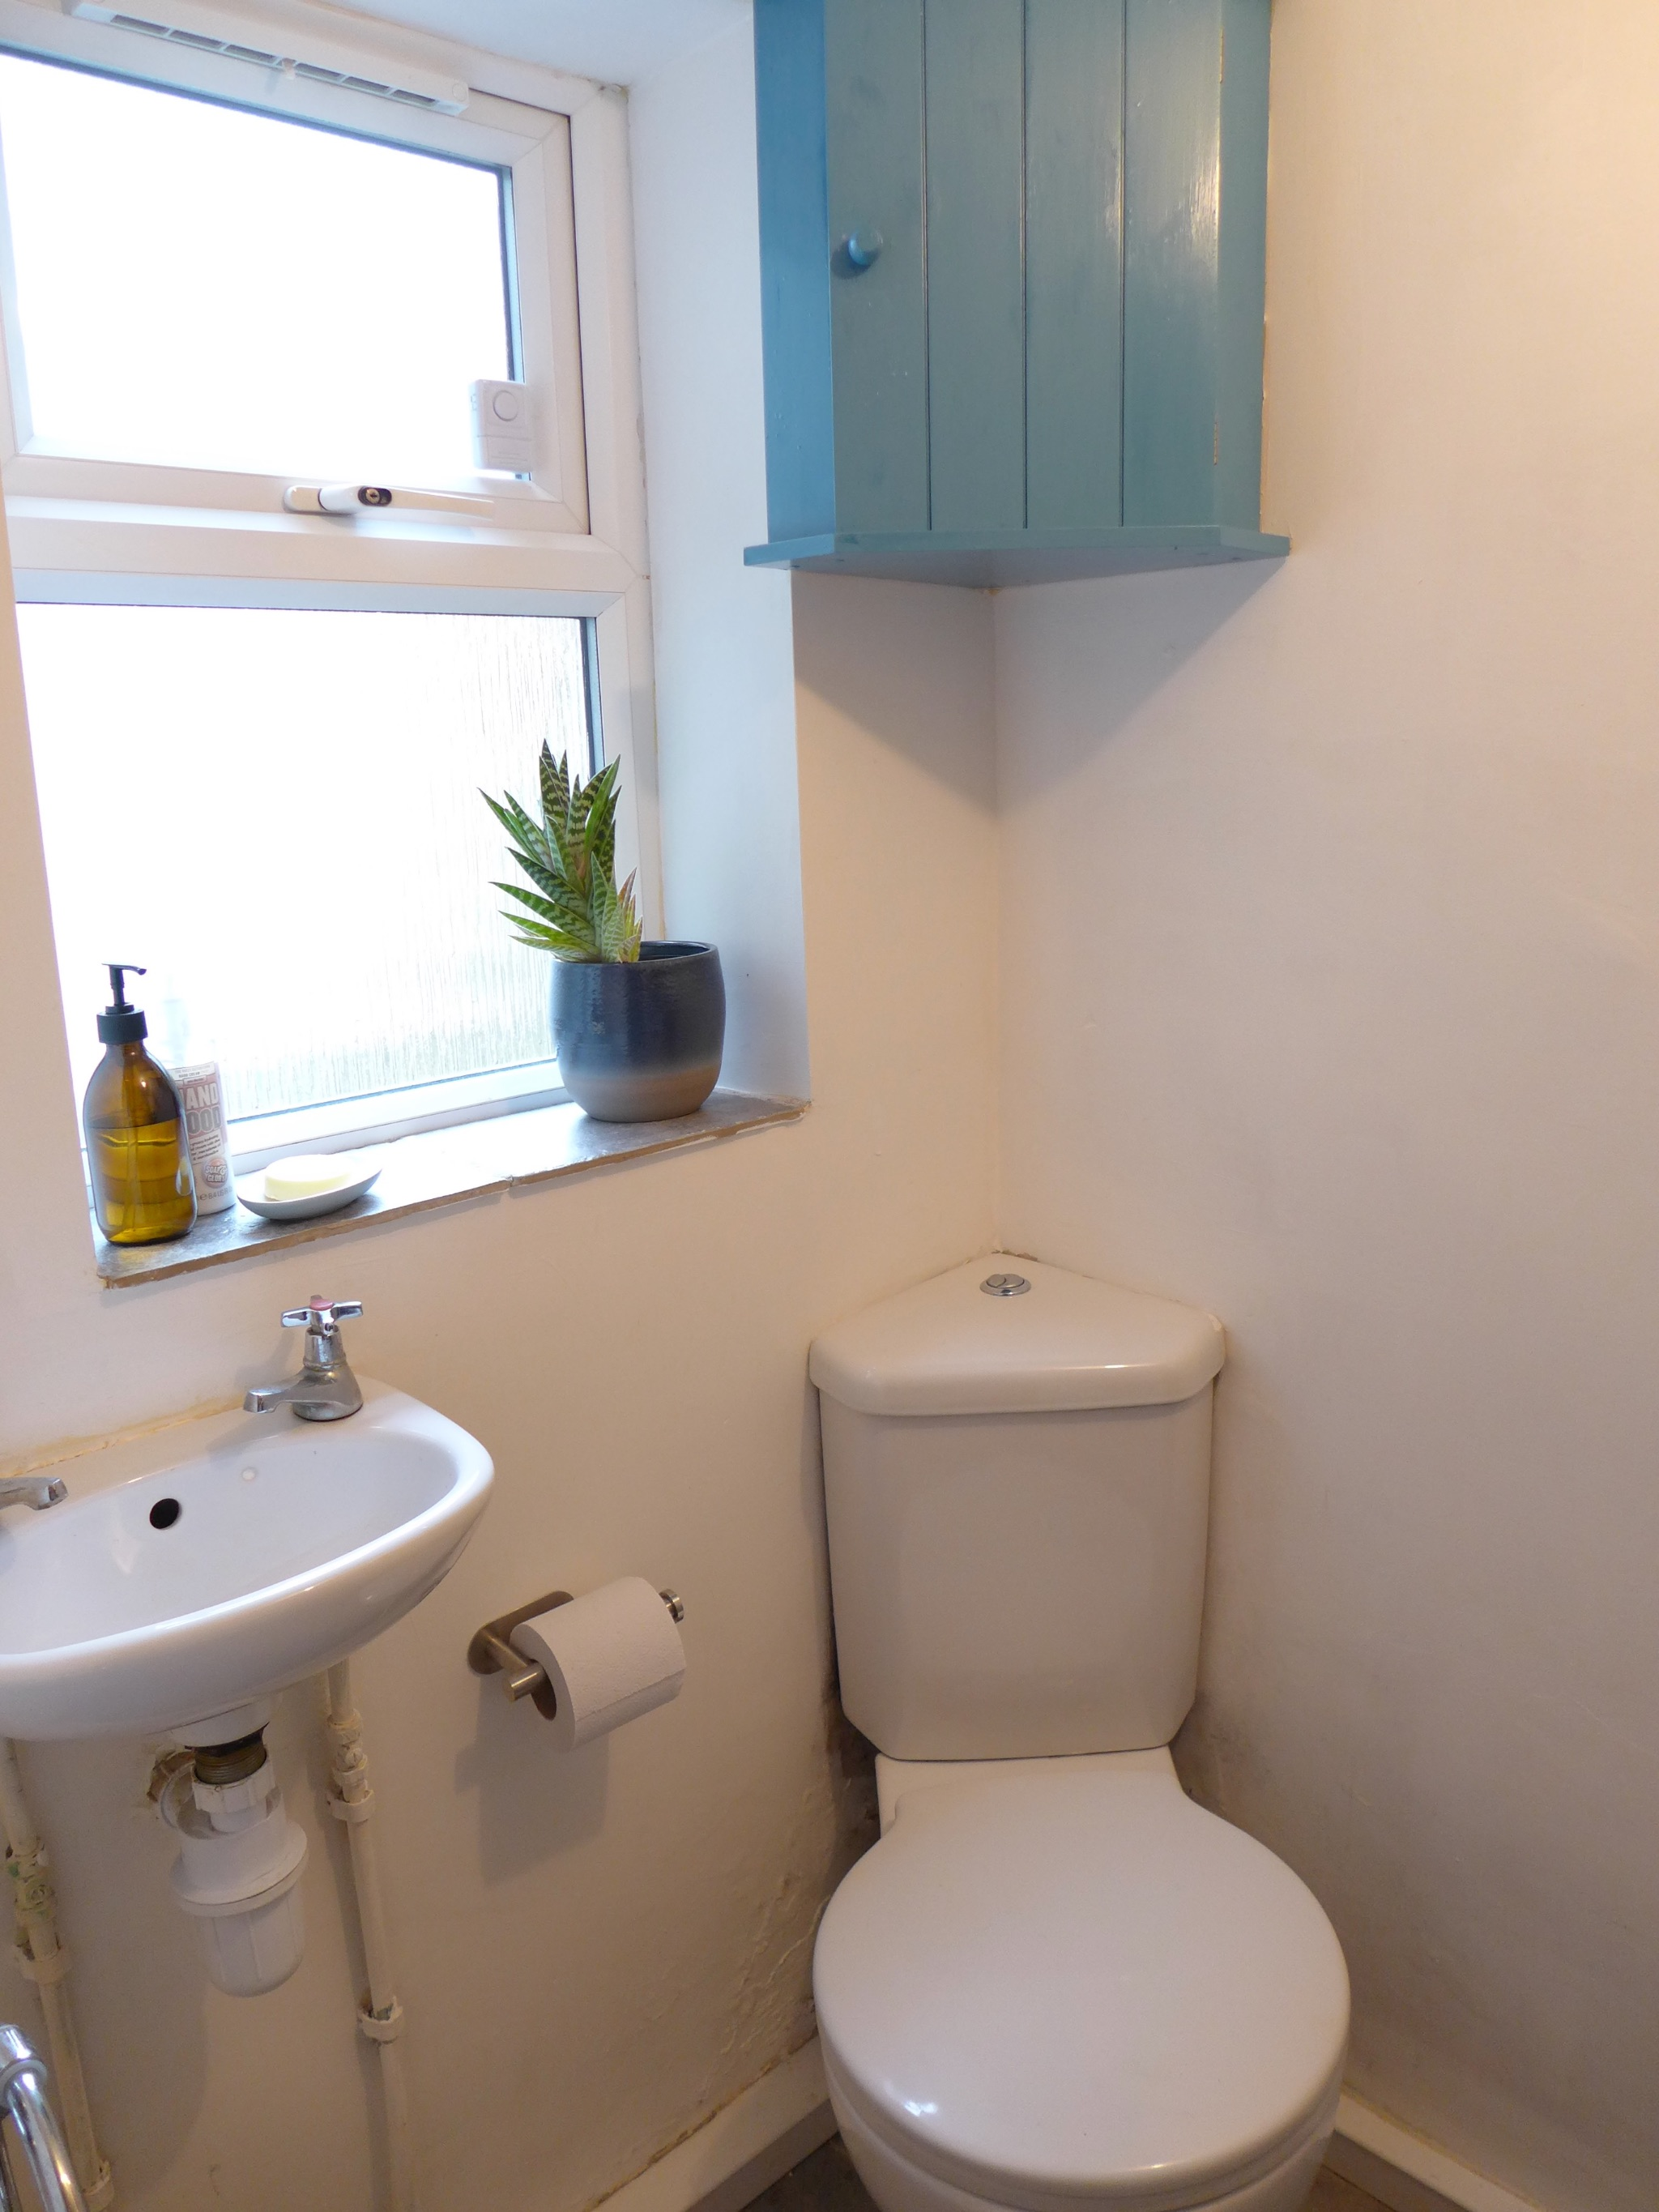 2 bedroom cottage house For Sale in Calderdale - Photograph 9.